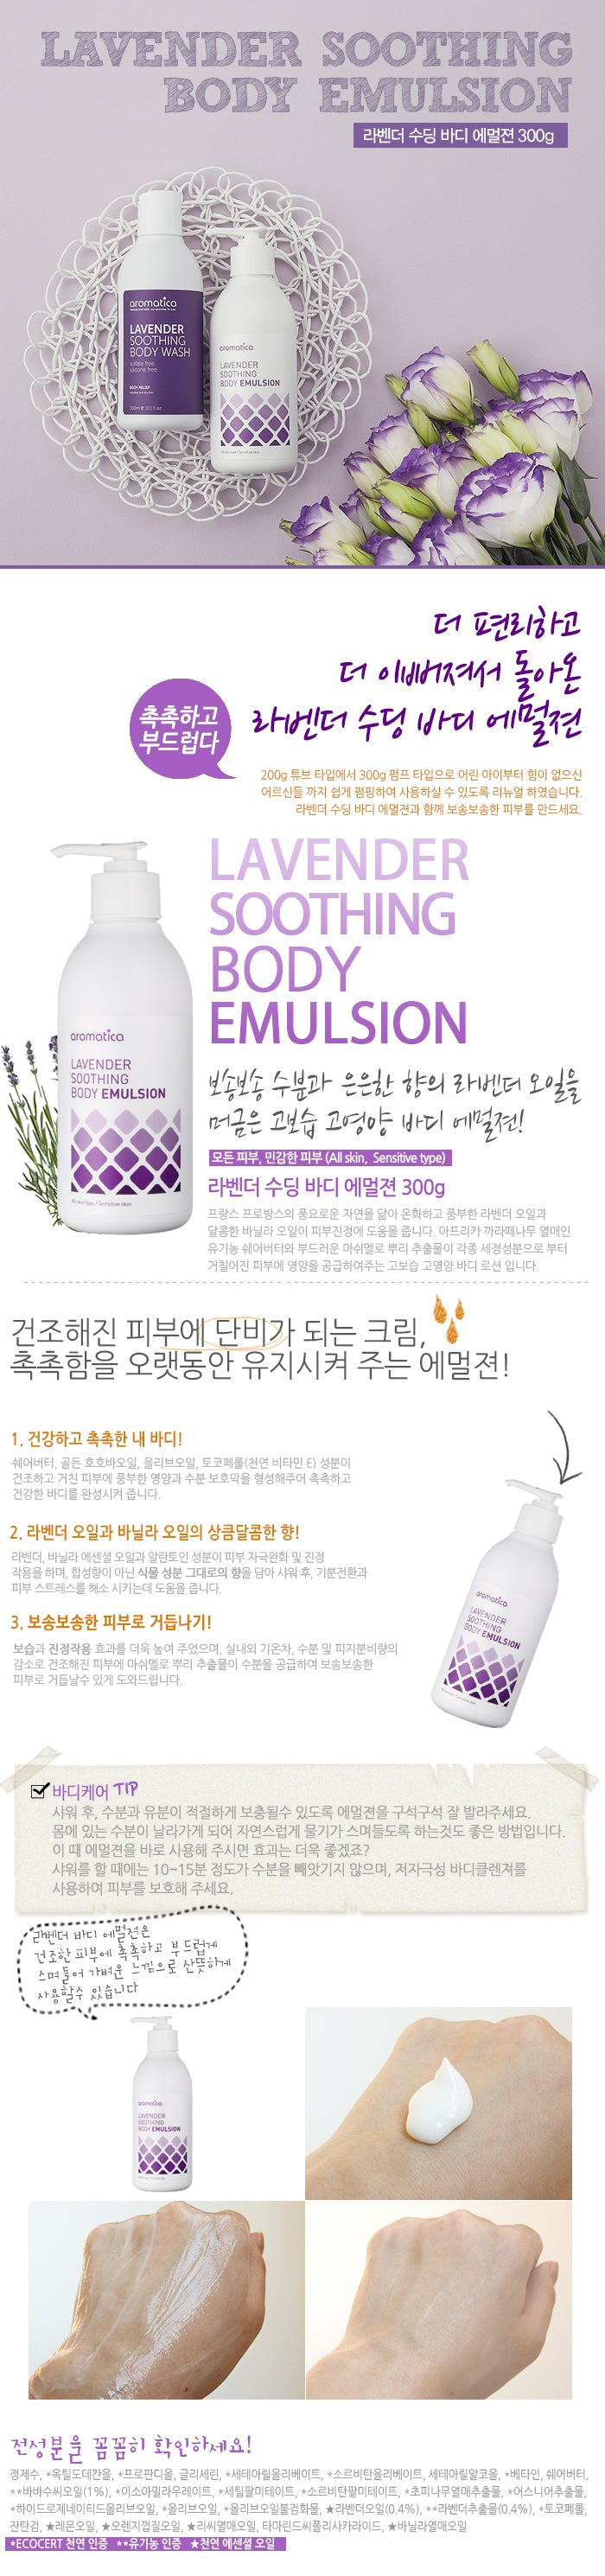 Aromatica – Lavender Soothing Body Emulsion